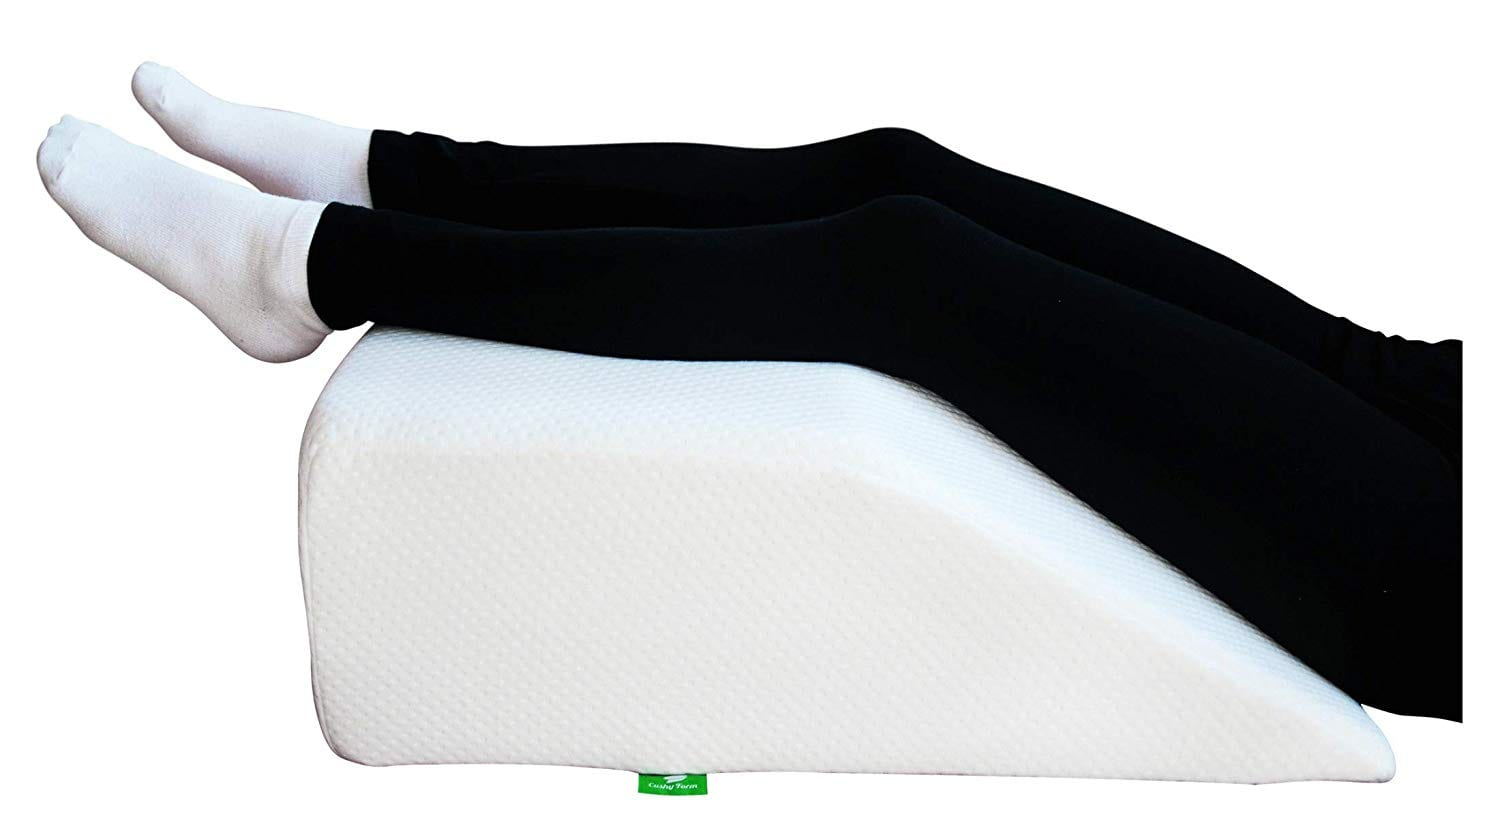 Cushy Form Knee Pillow Review by www.snoremagazine.com